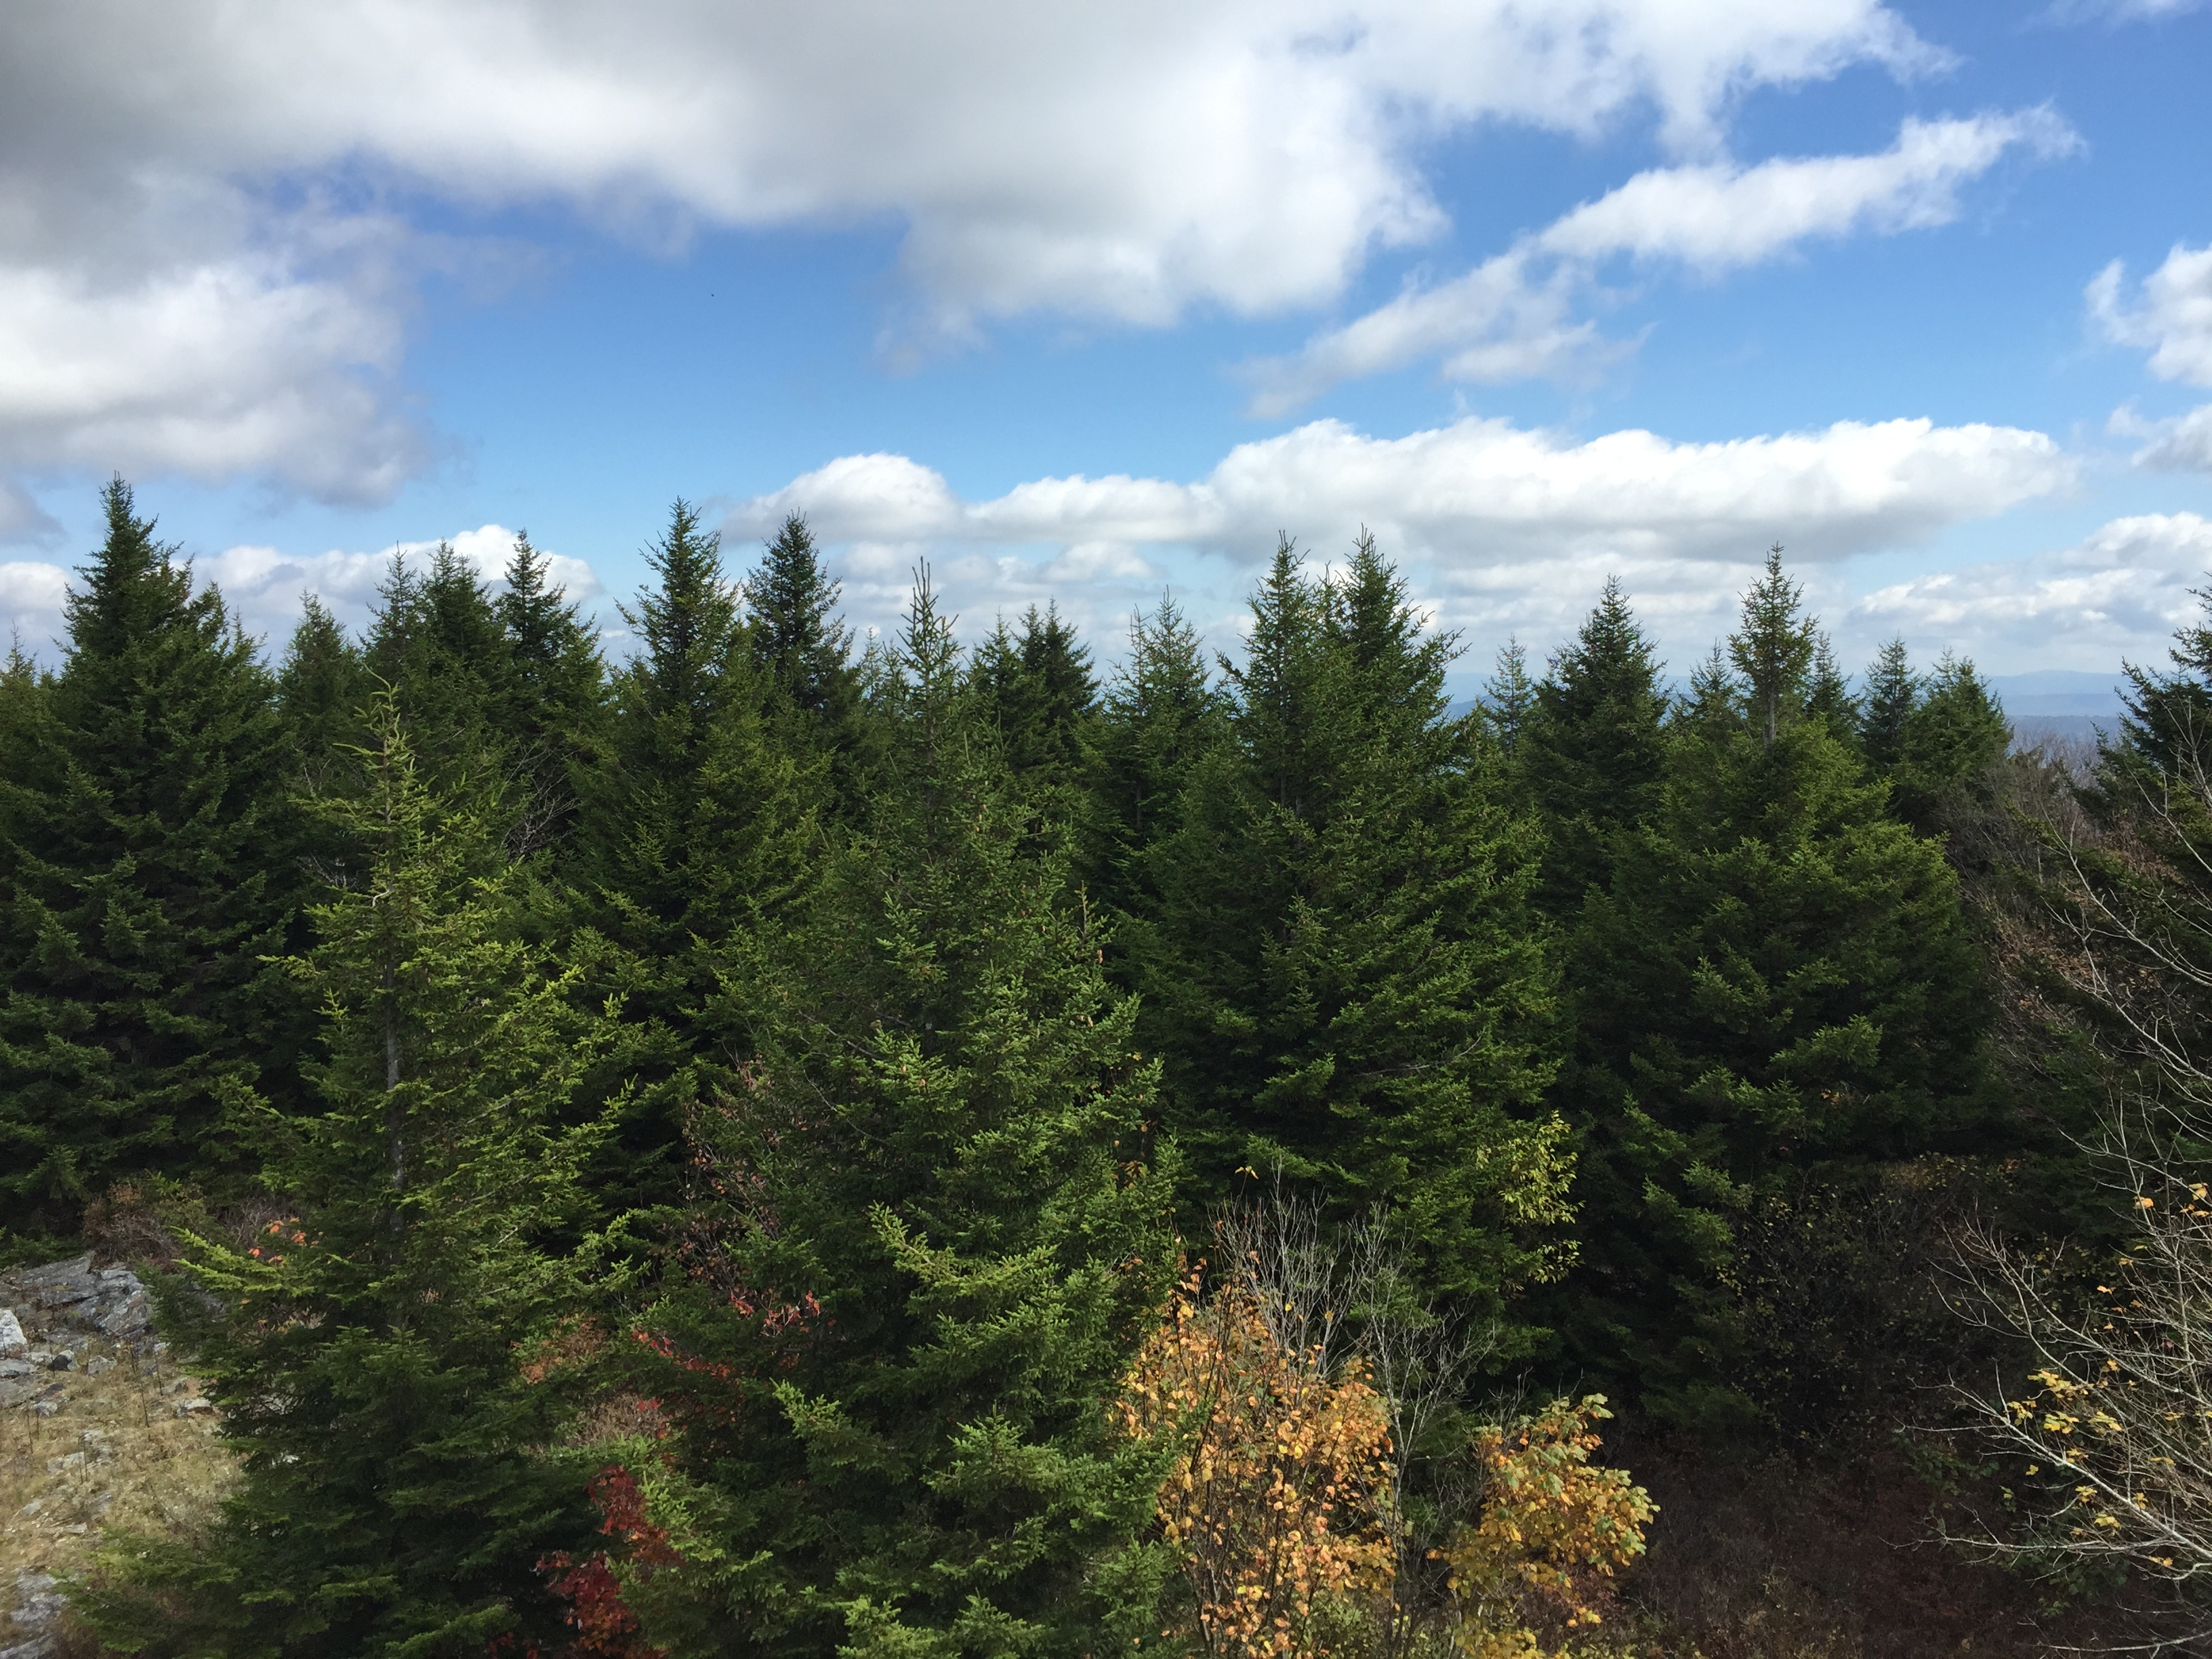 File:2015-10-07 12 59 23 View east across Red Spruce ...